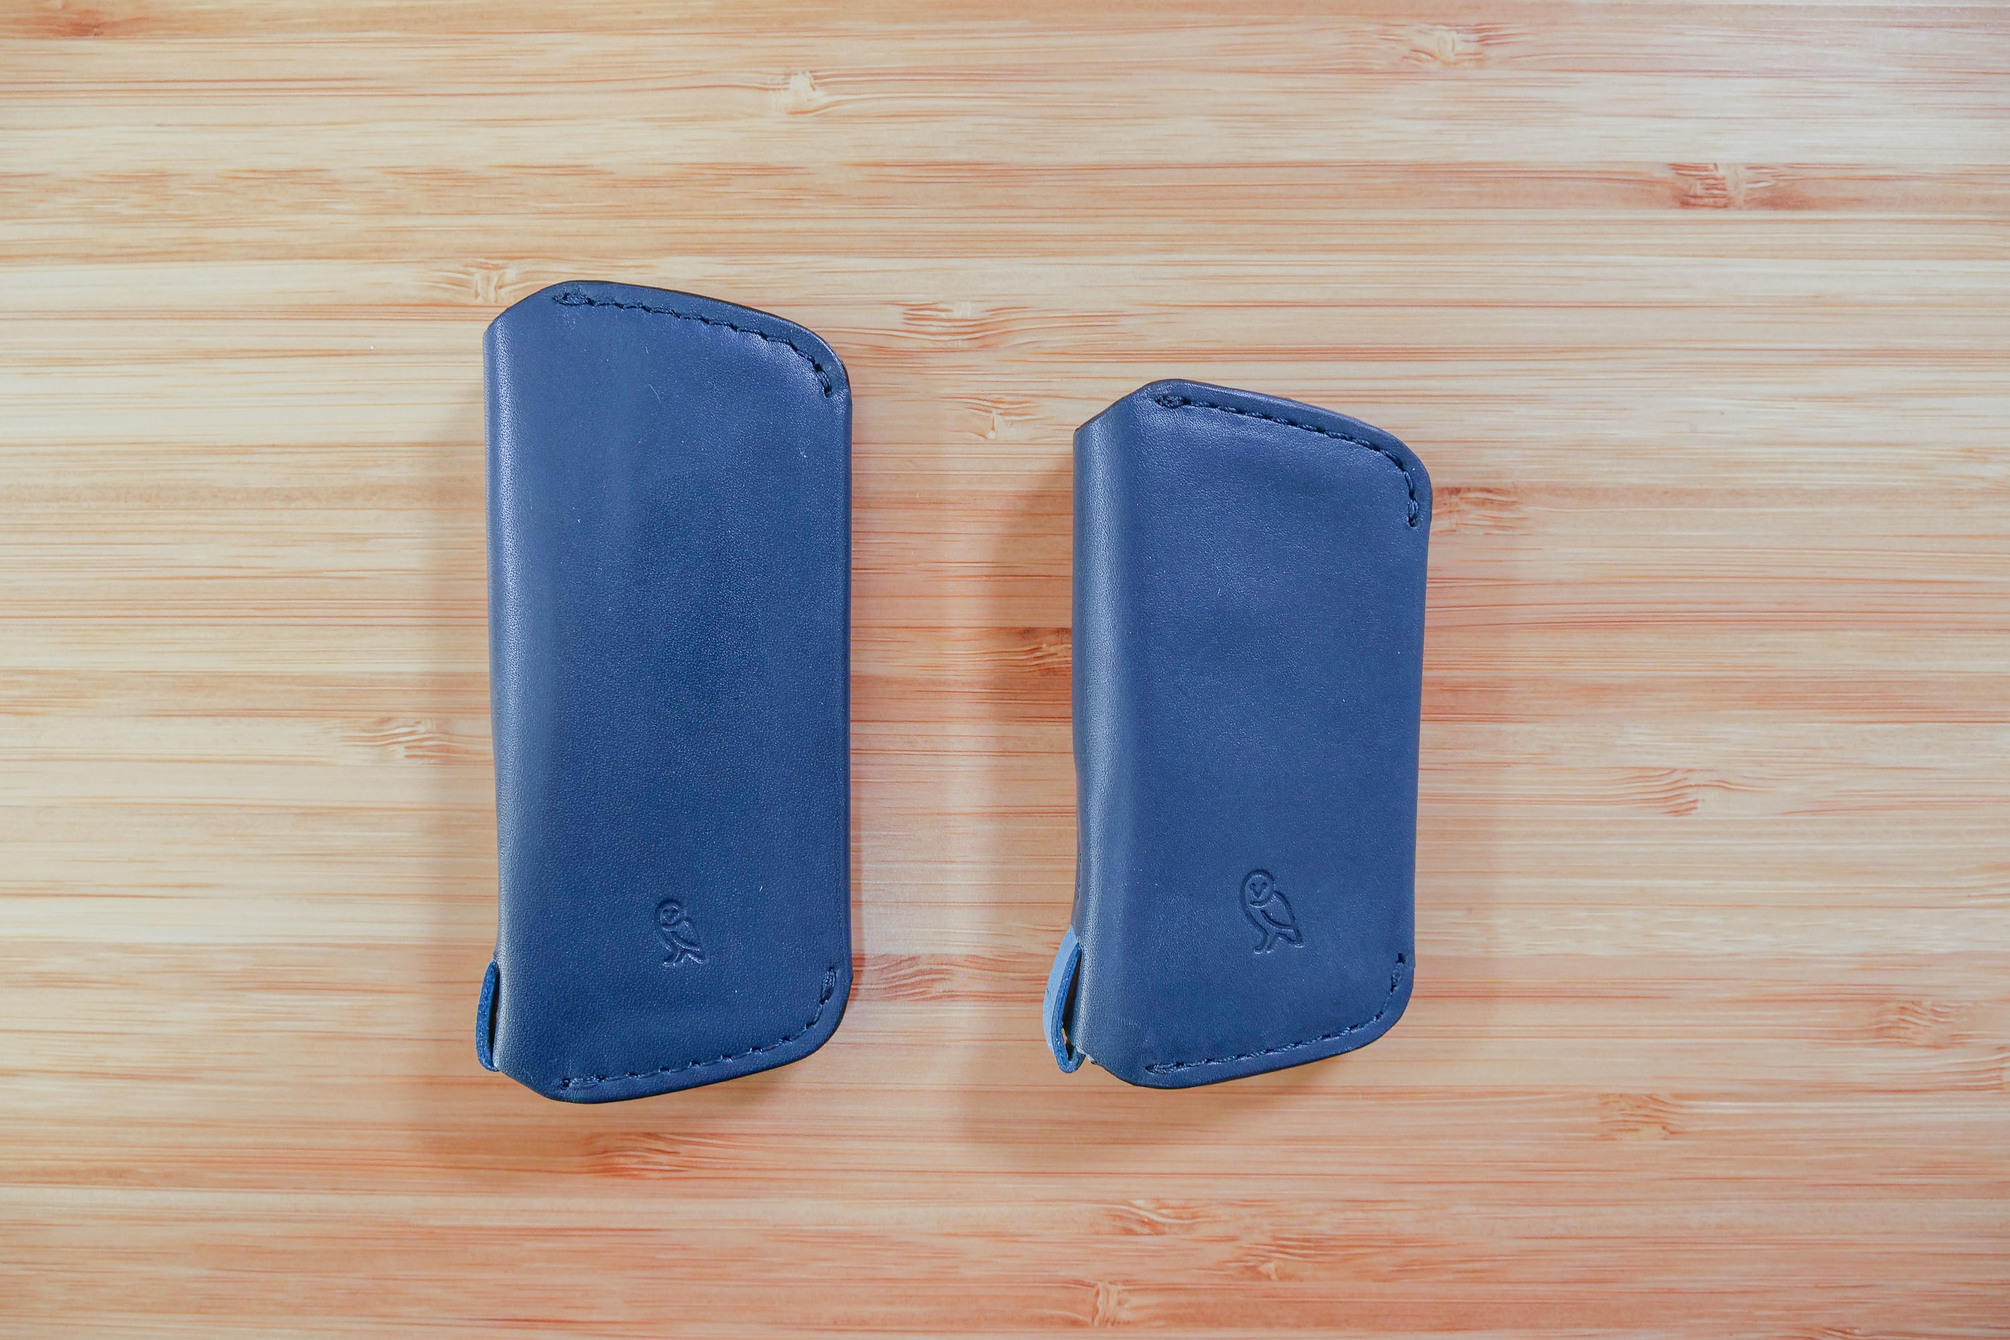 Bellroy Key Cover Plus vs plus